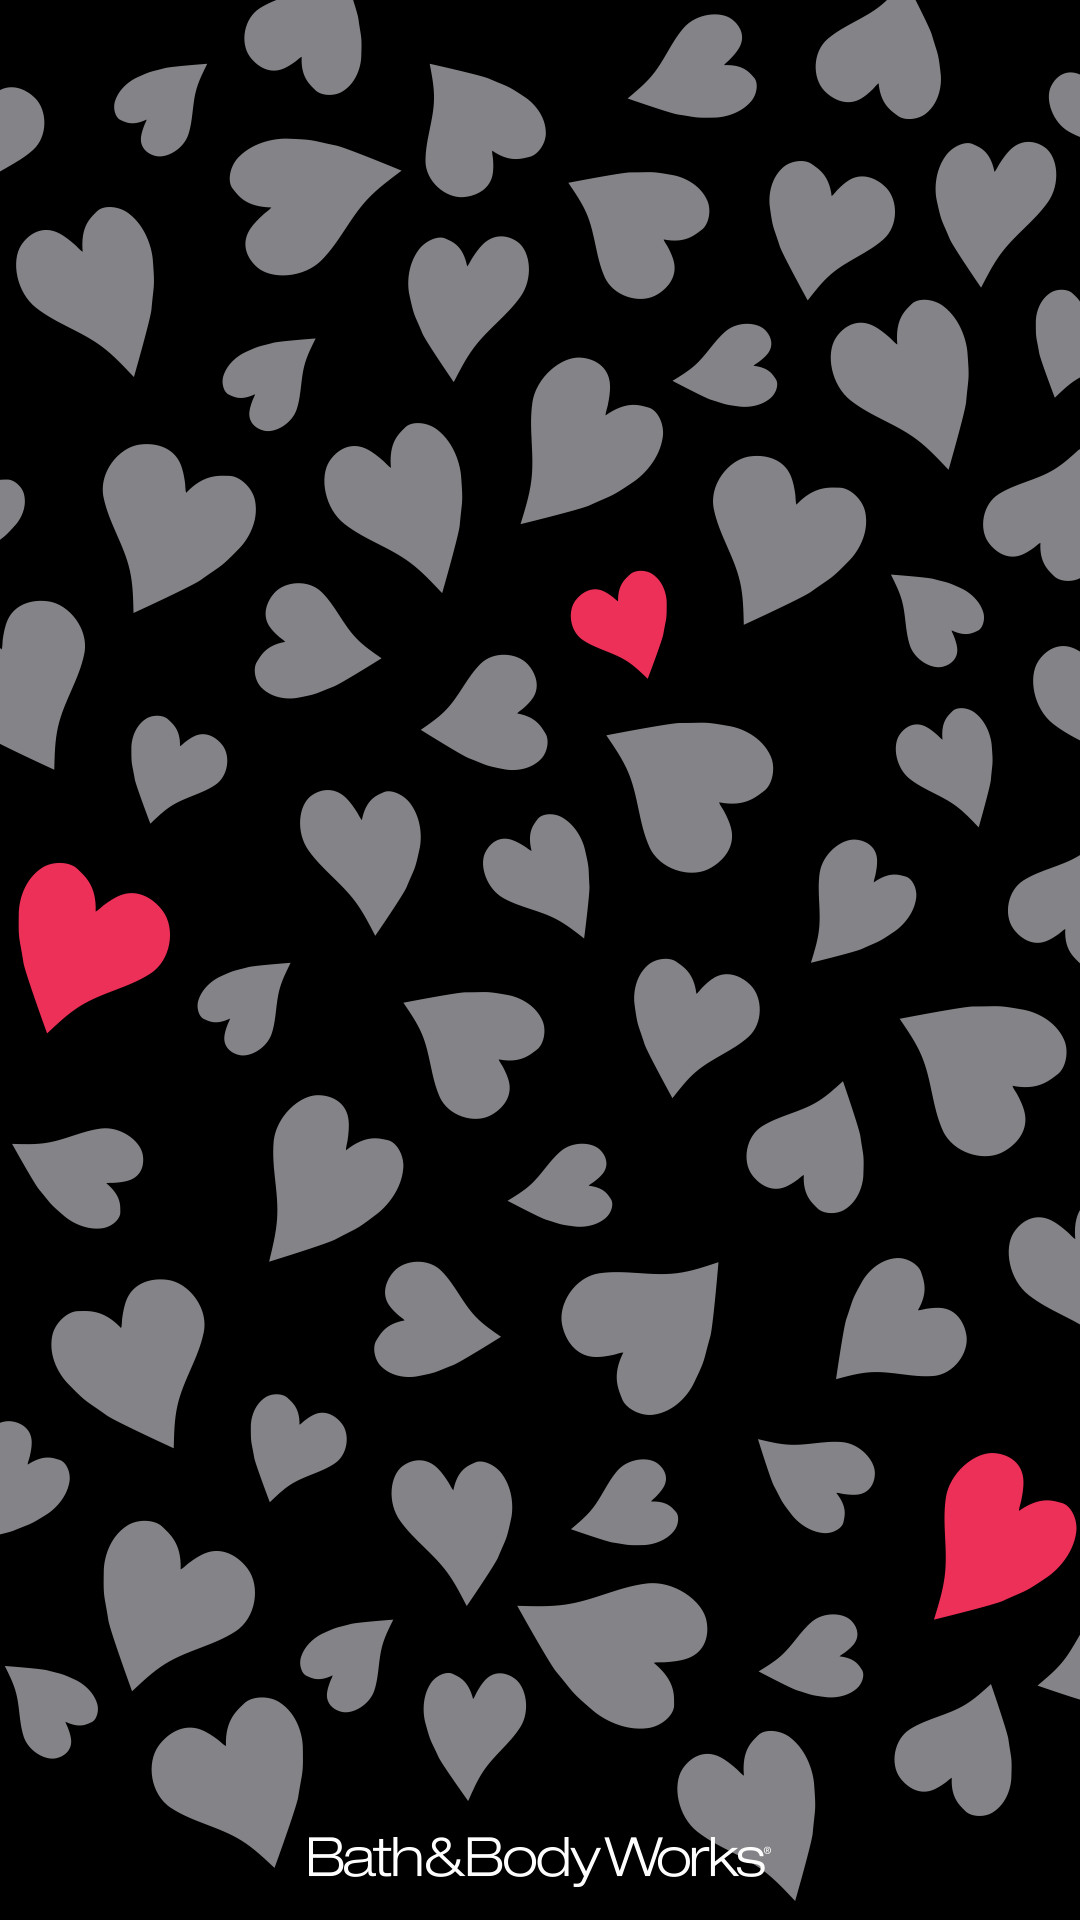 Fire Heart Wallpaper Iphone 6 Wallpaper Hd Heart Black